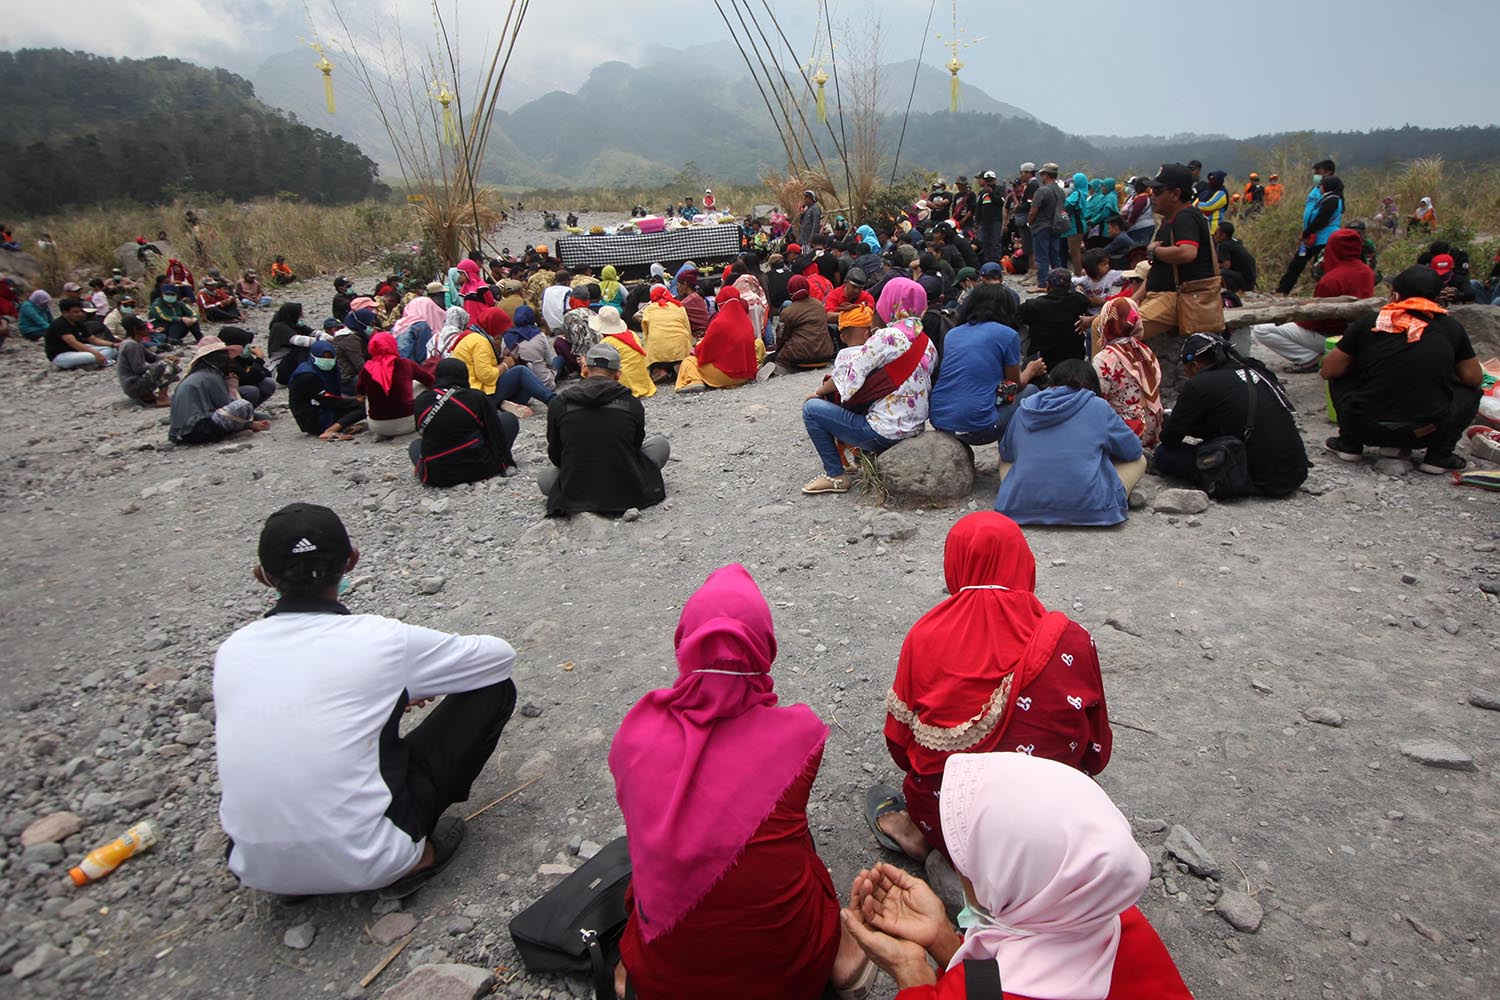 Participants sat on the volcanic ashes of Mount Merapi. JP/Boy T Harjanto